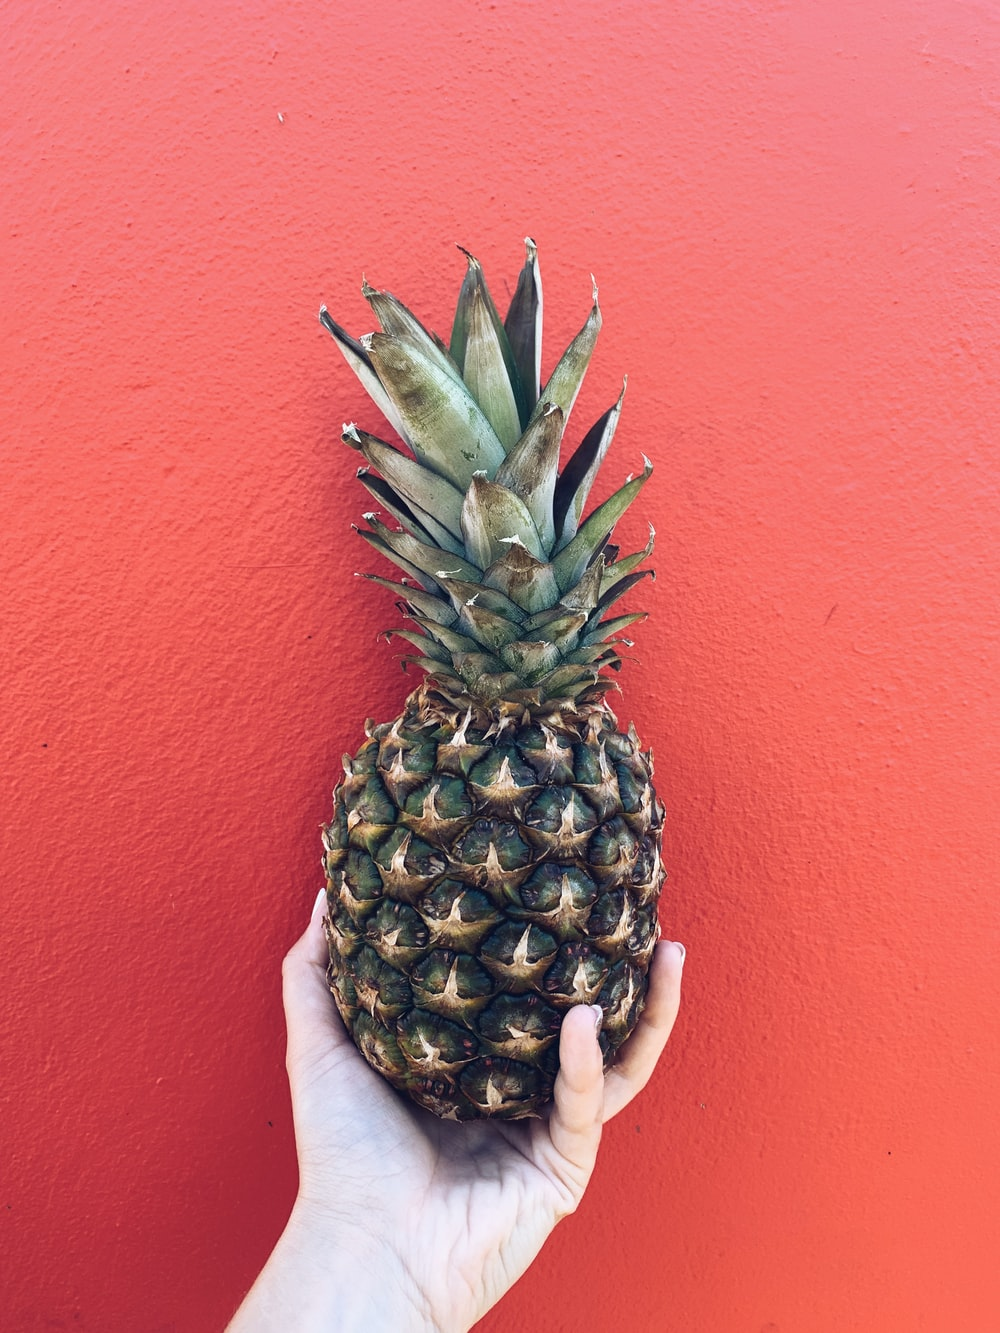 person holding pineapple fruit near red wall